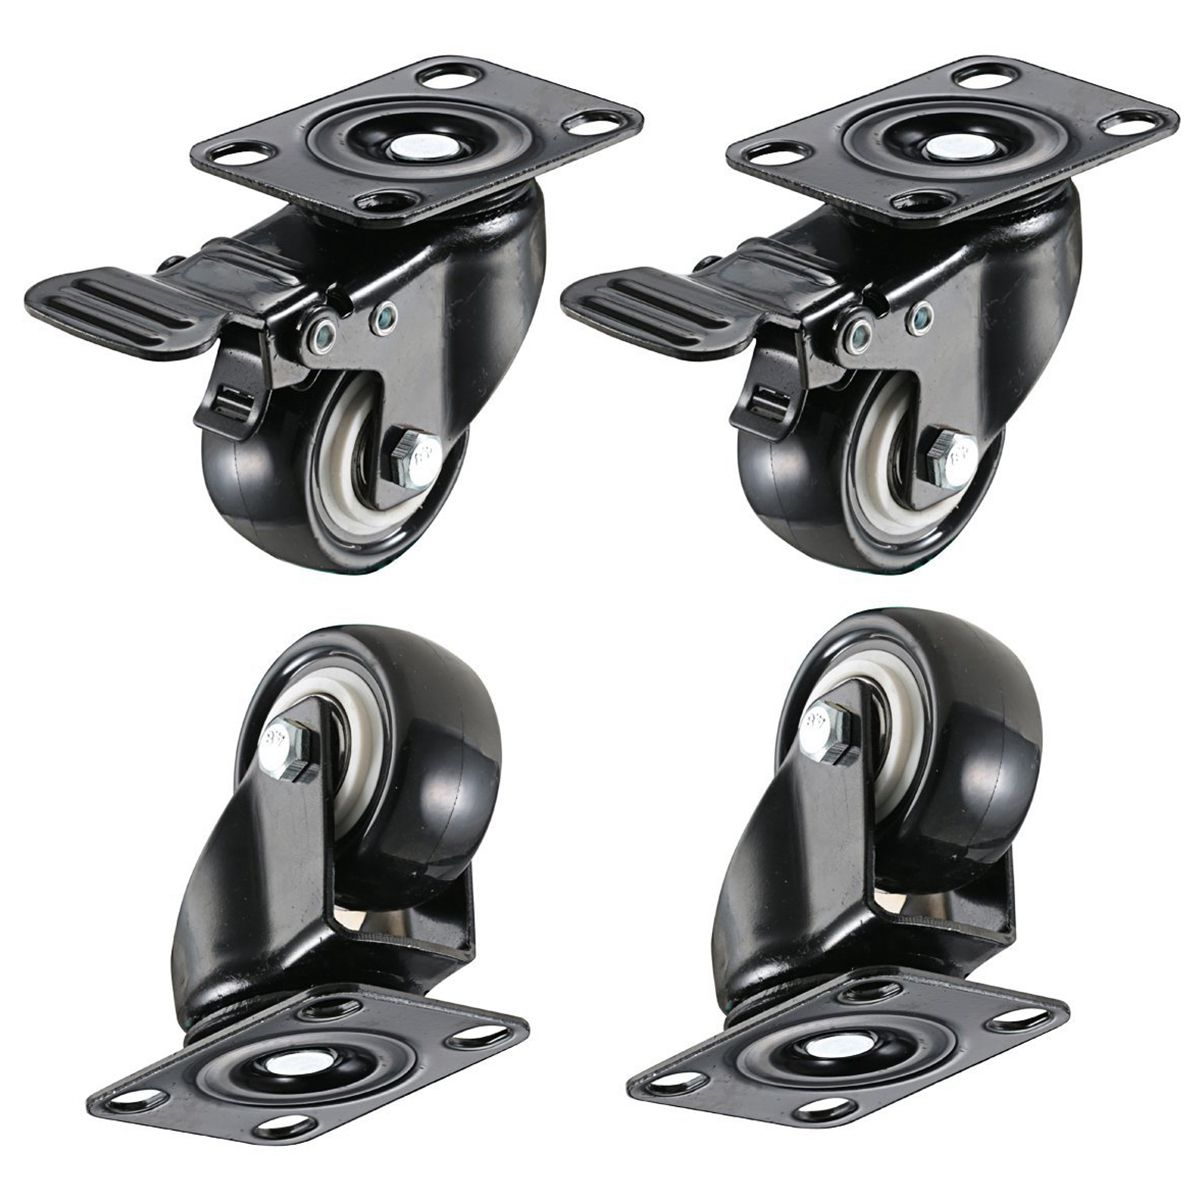 4 Pack 2in Heavy Duty Caster Wheels Polyurethane PU Swivel Casters with 360 Degree Top Plate 220lb Total Capacity for Set of 4 ( title=